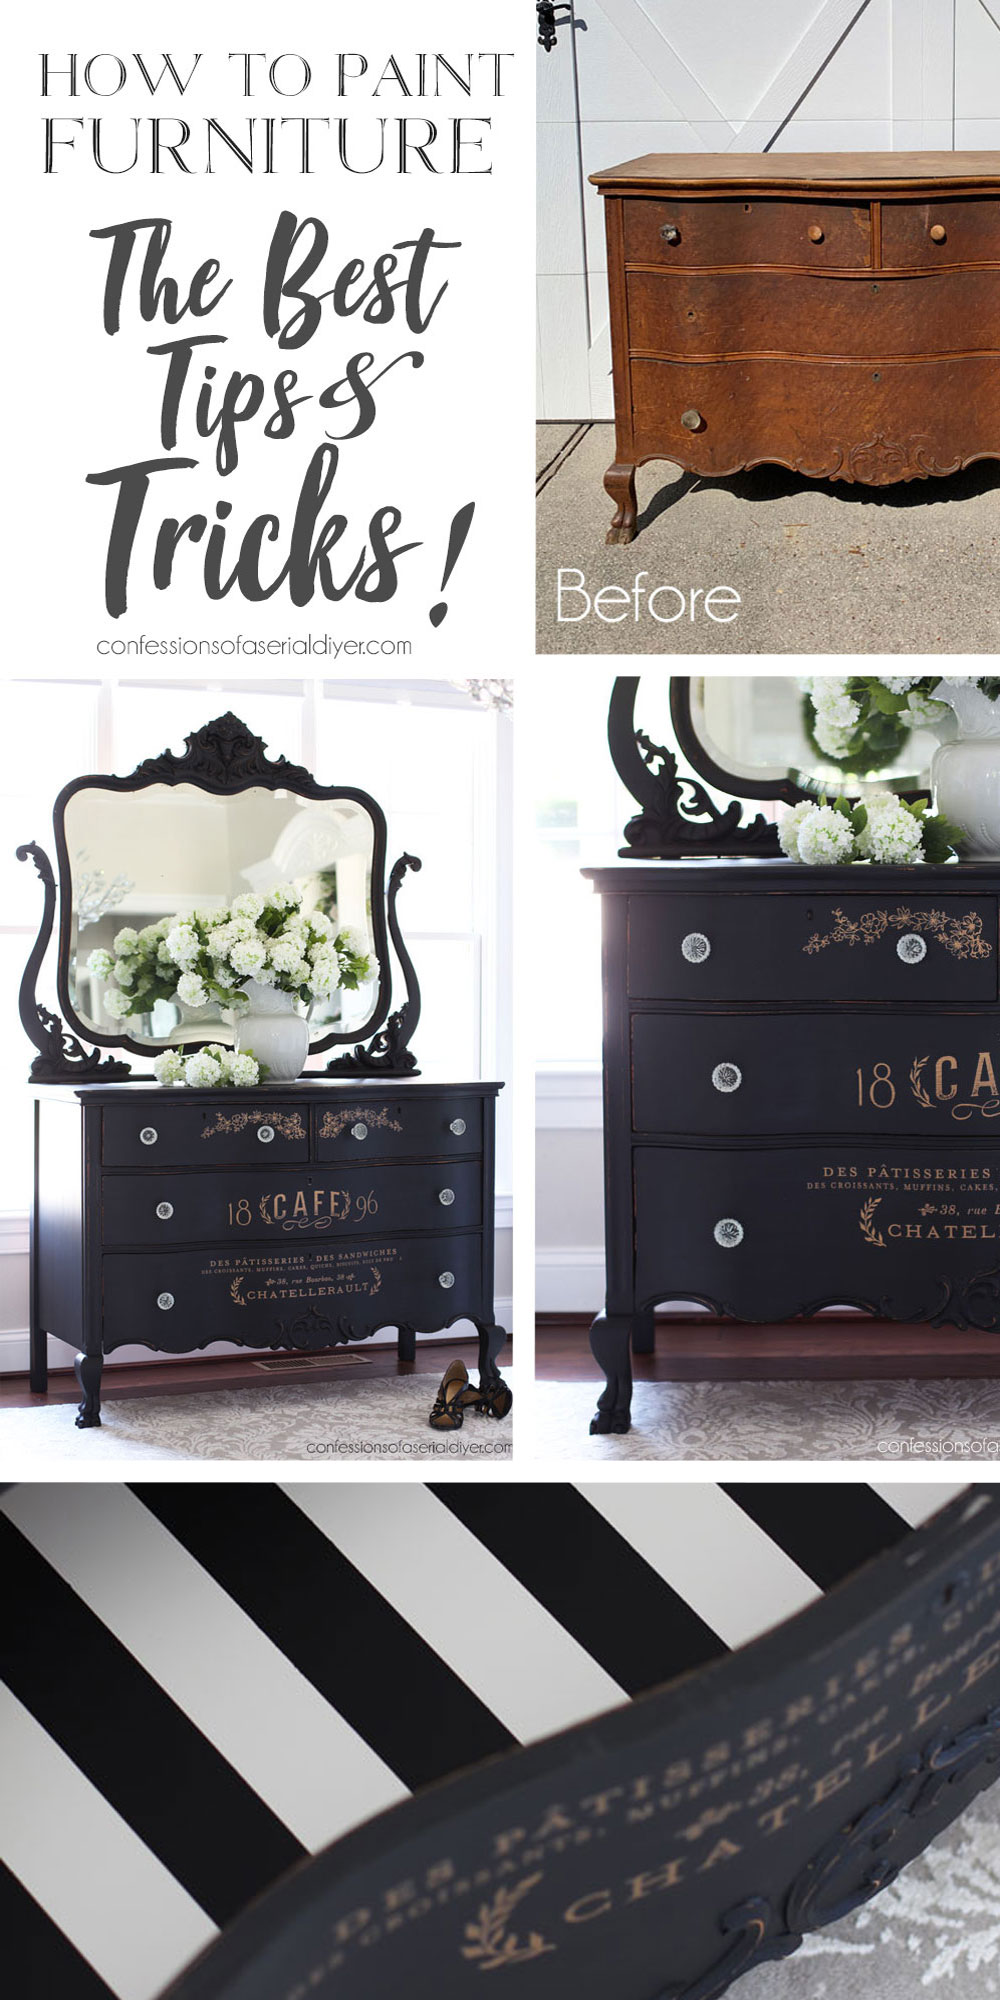 How to Paint Furniture (The Best Tips & Tricks)